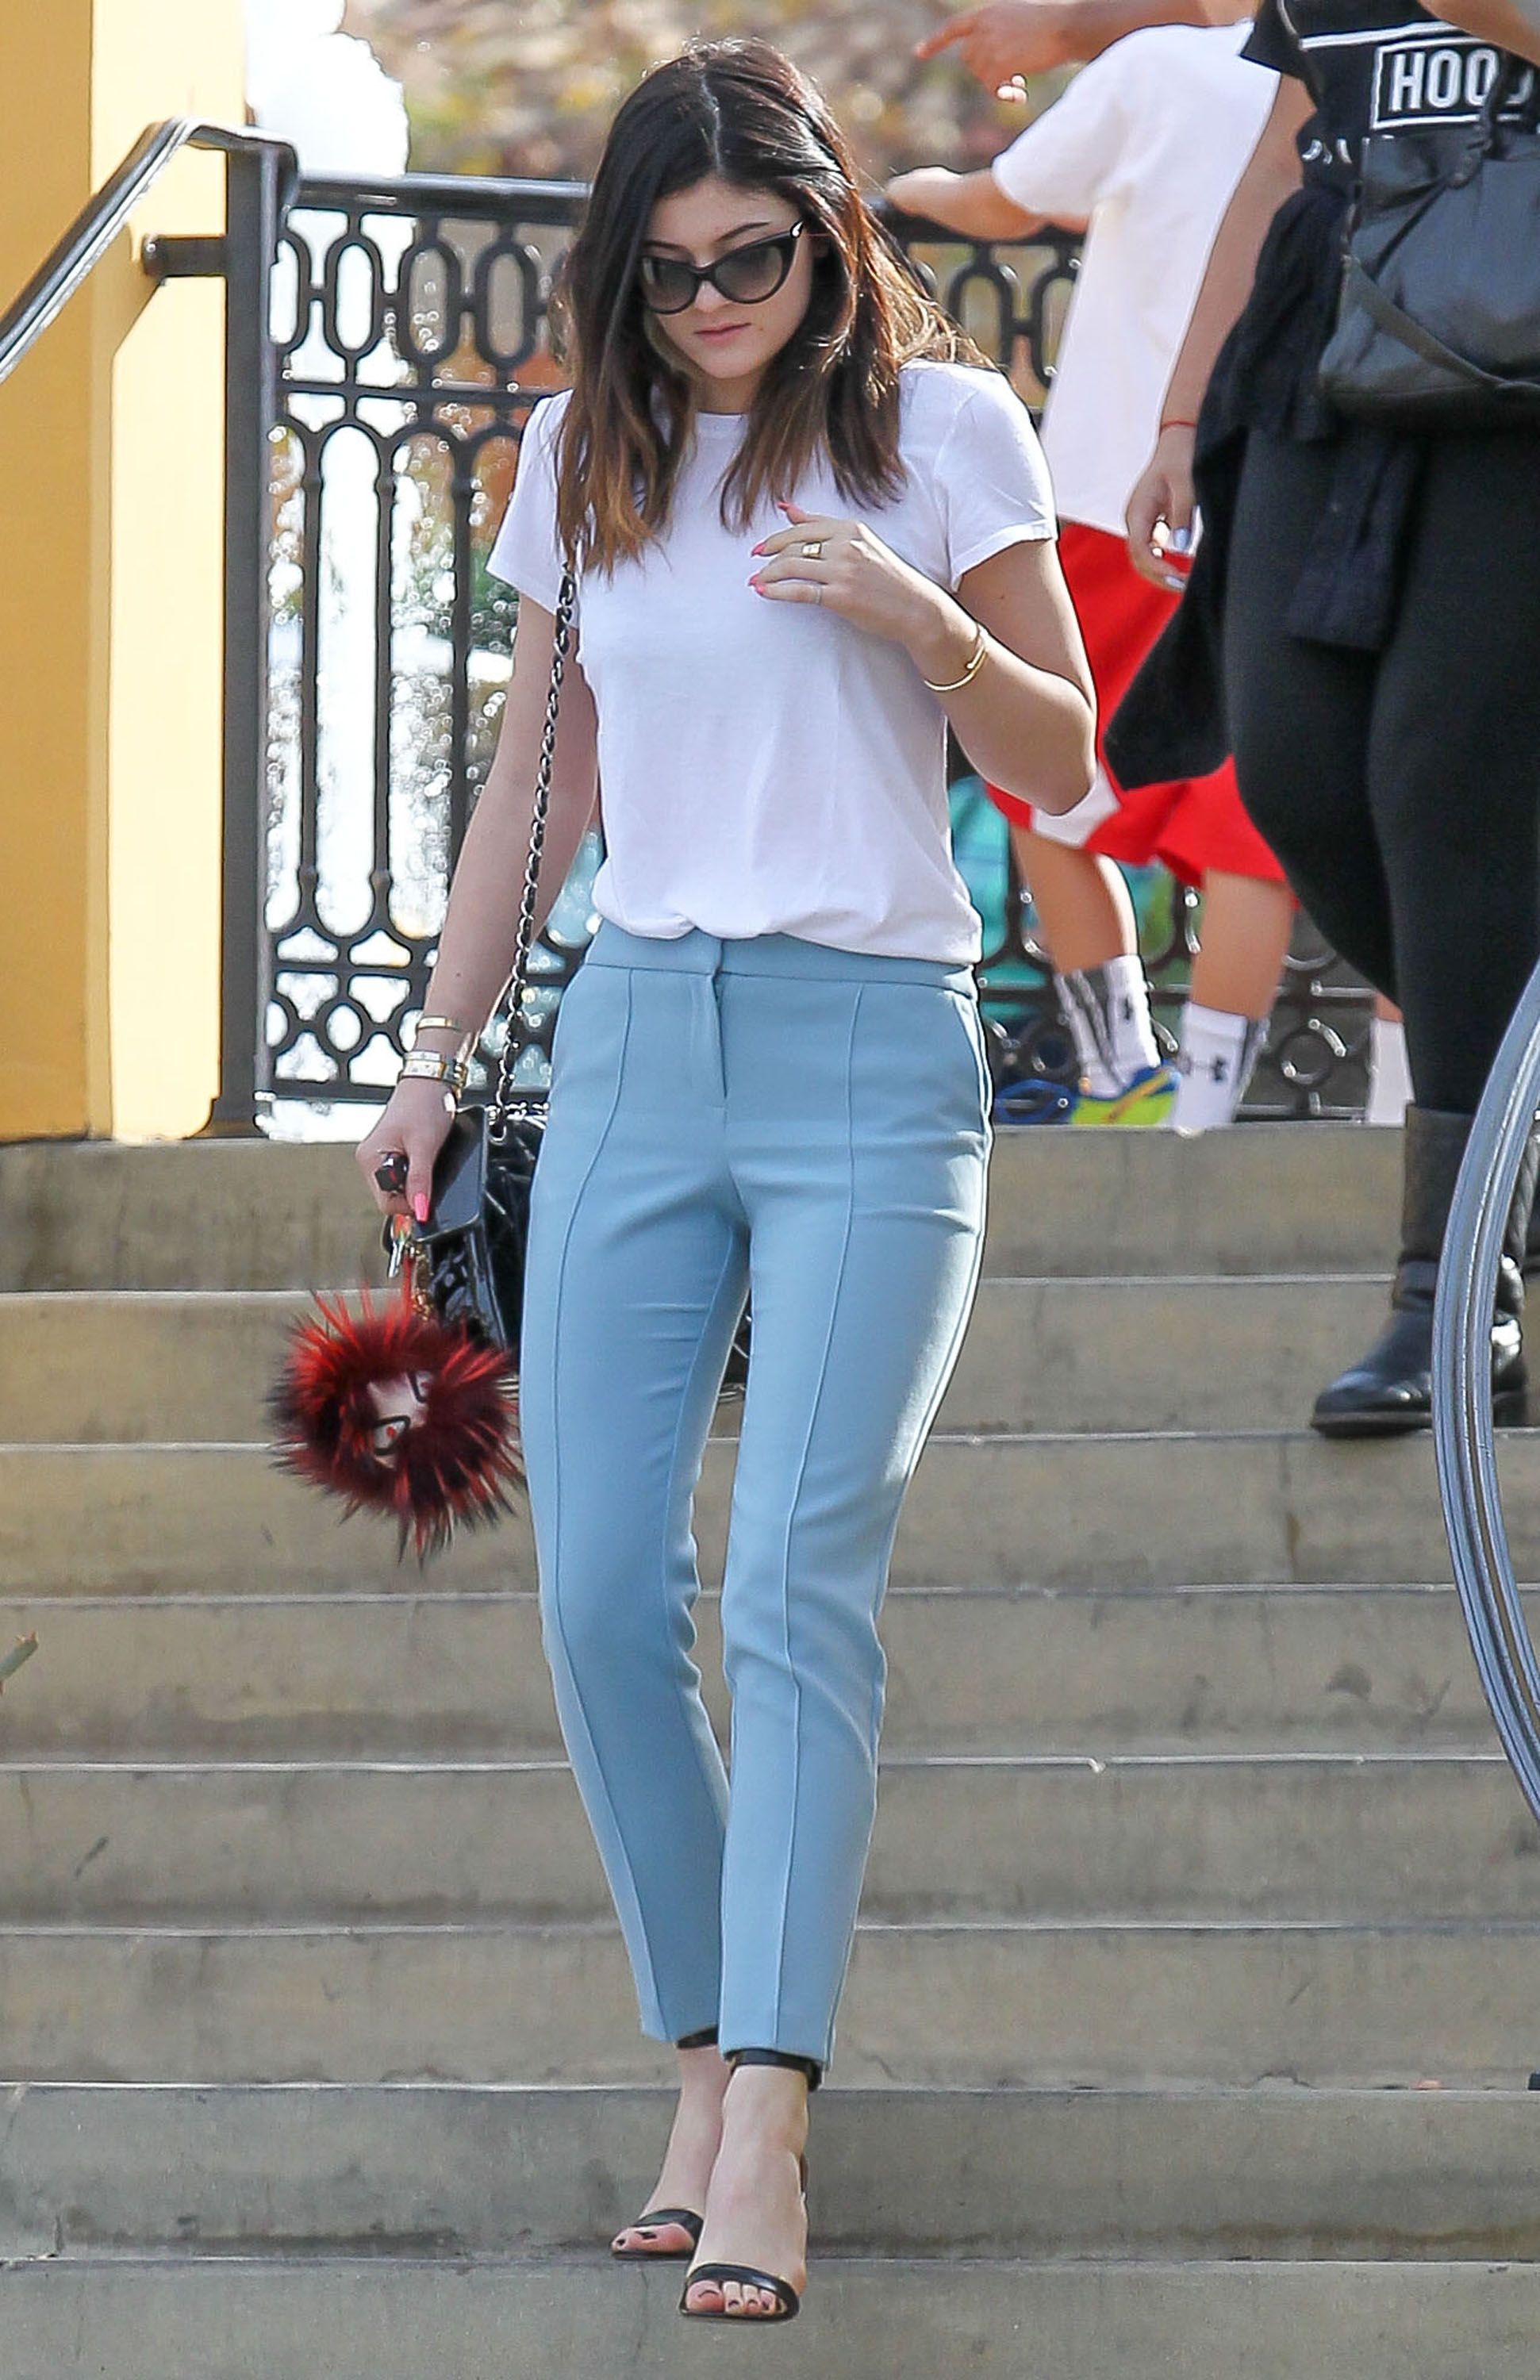 Kylie Jenner Casual Outfits 2014 Kylie Jenner Ph...